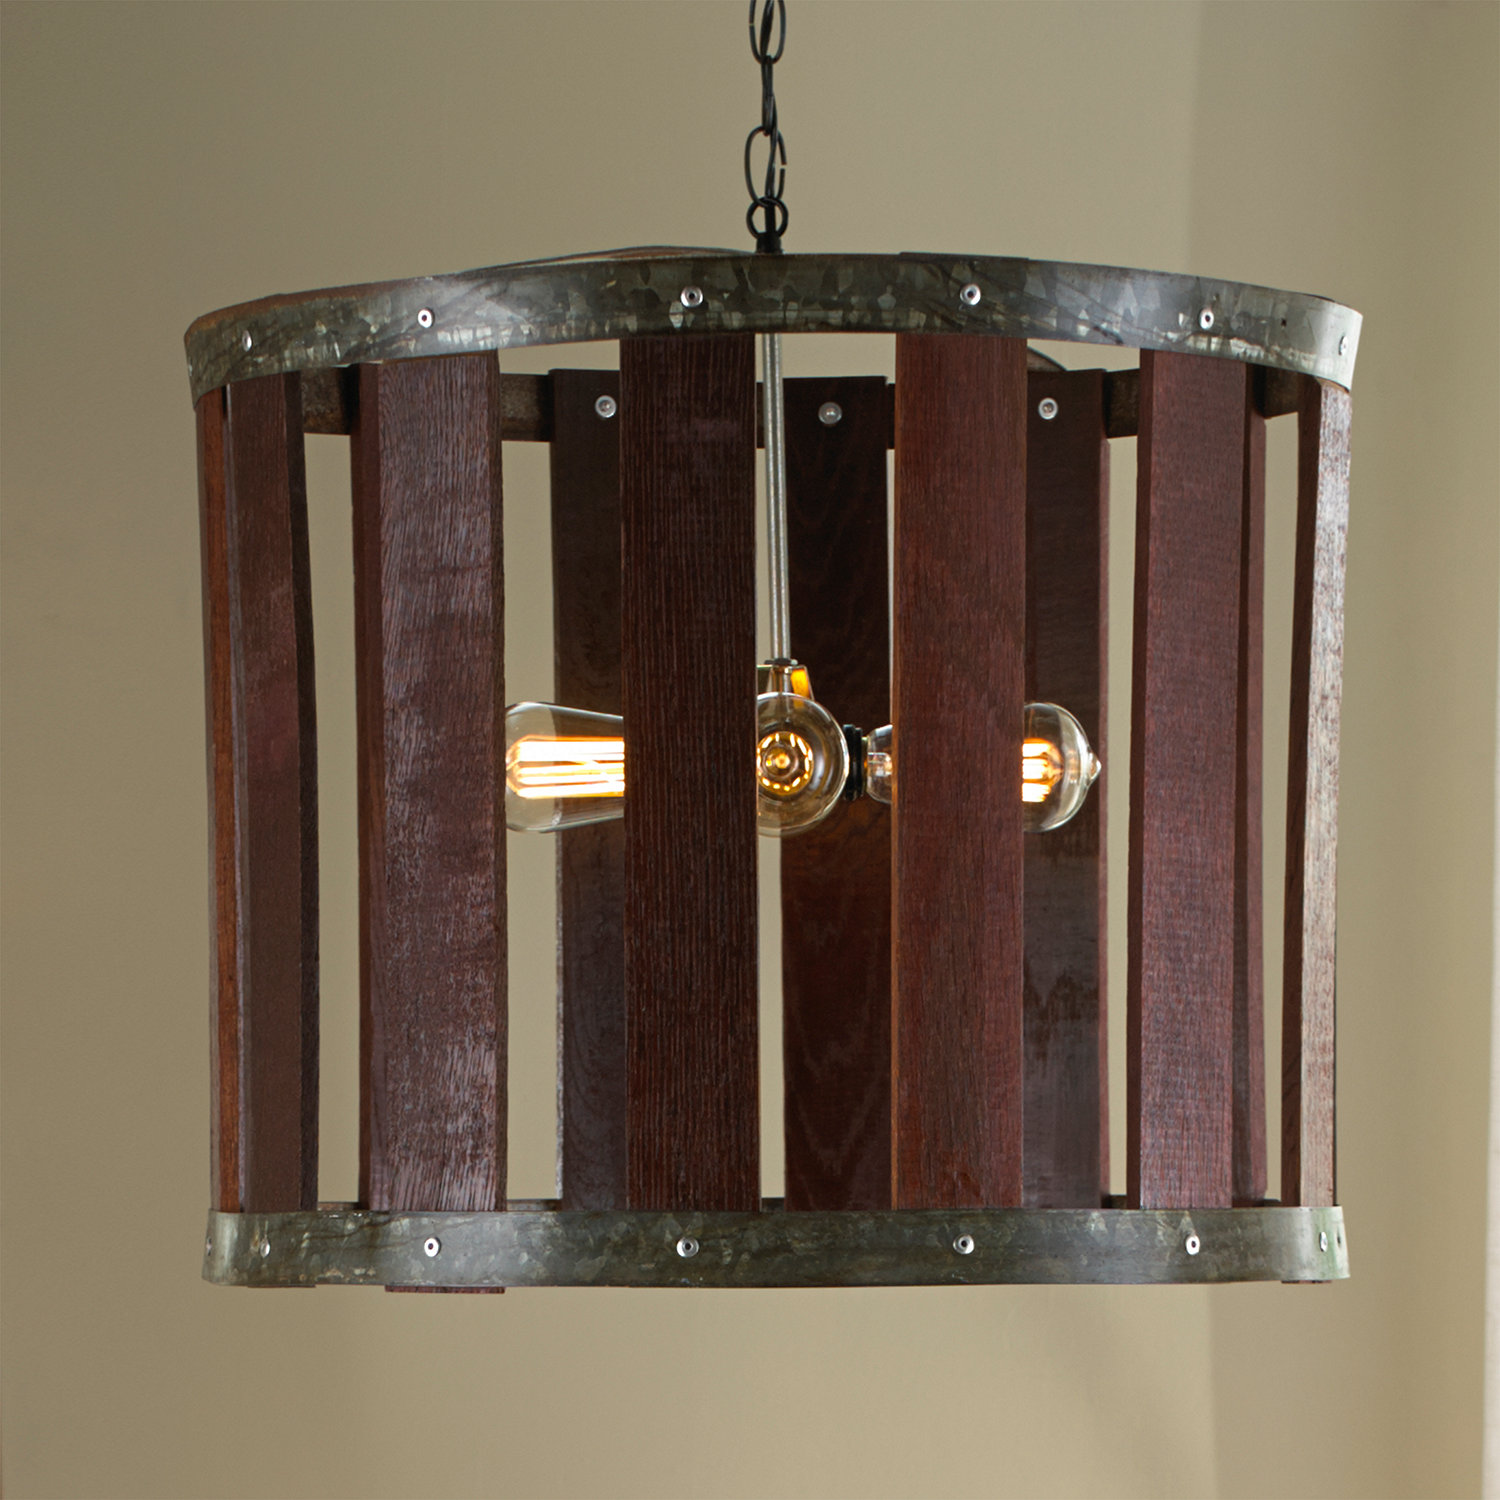 Barrel stave chandelier wine enthusiast barrel stave chandelier preparing zoom mozeypictures Image collections